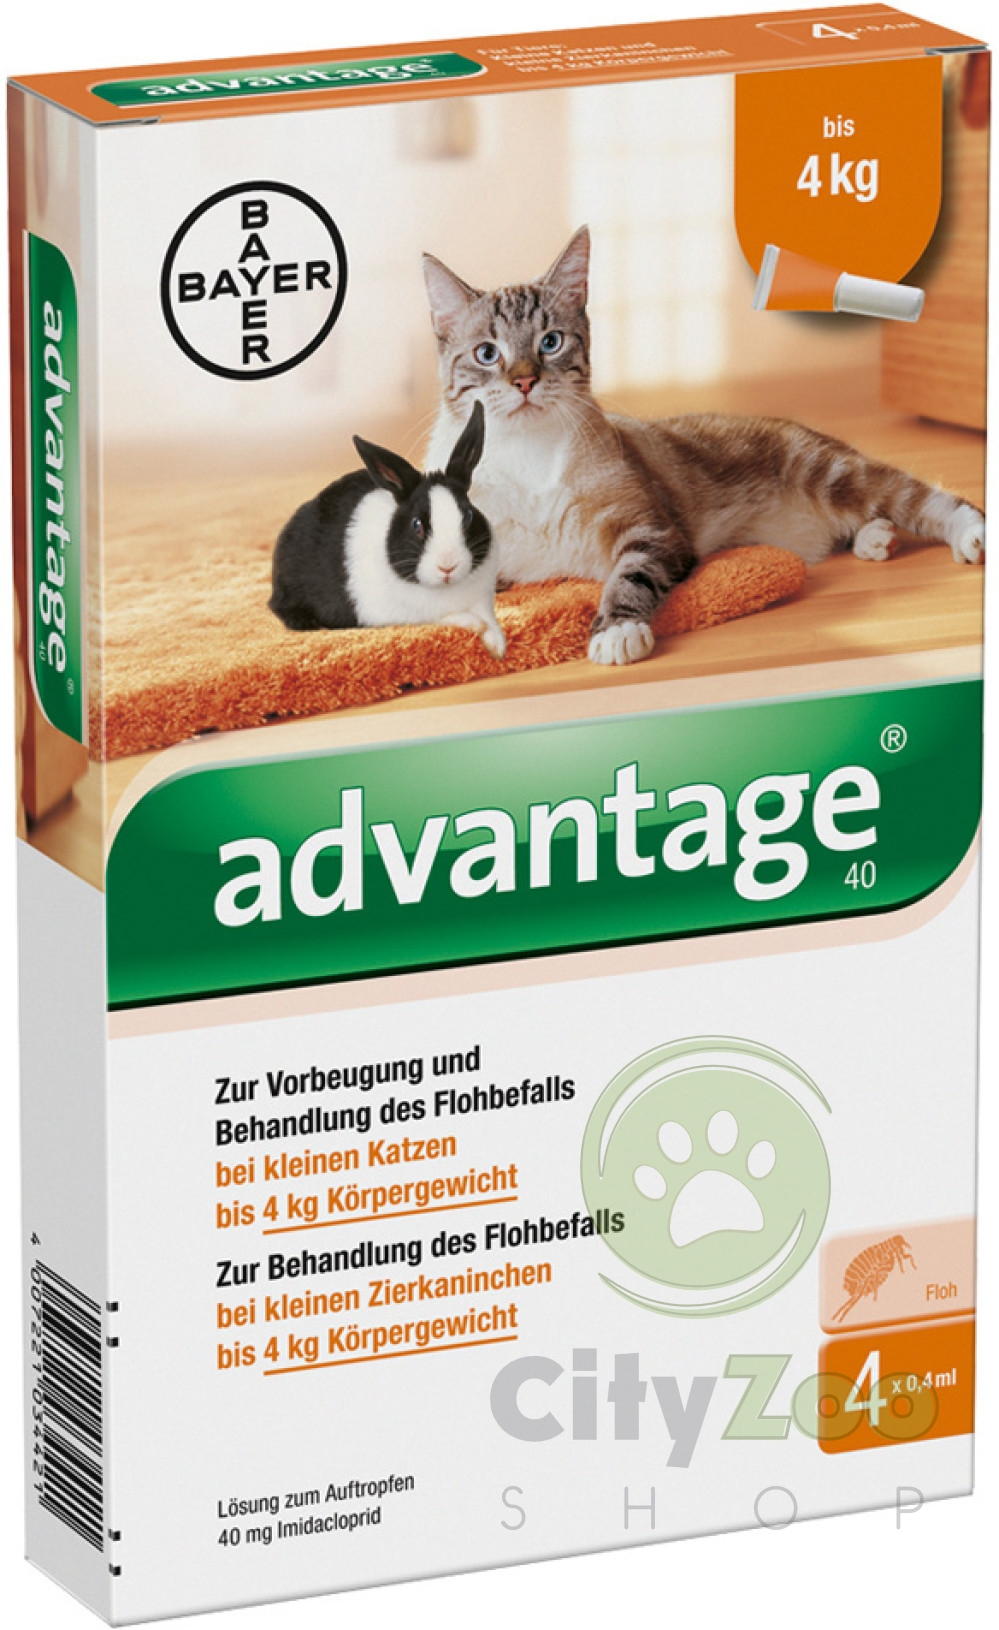 zoo/Bayer_Advantage_40_dlja_koshek_do_4_kg